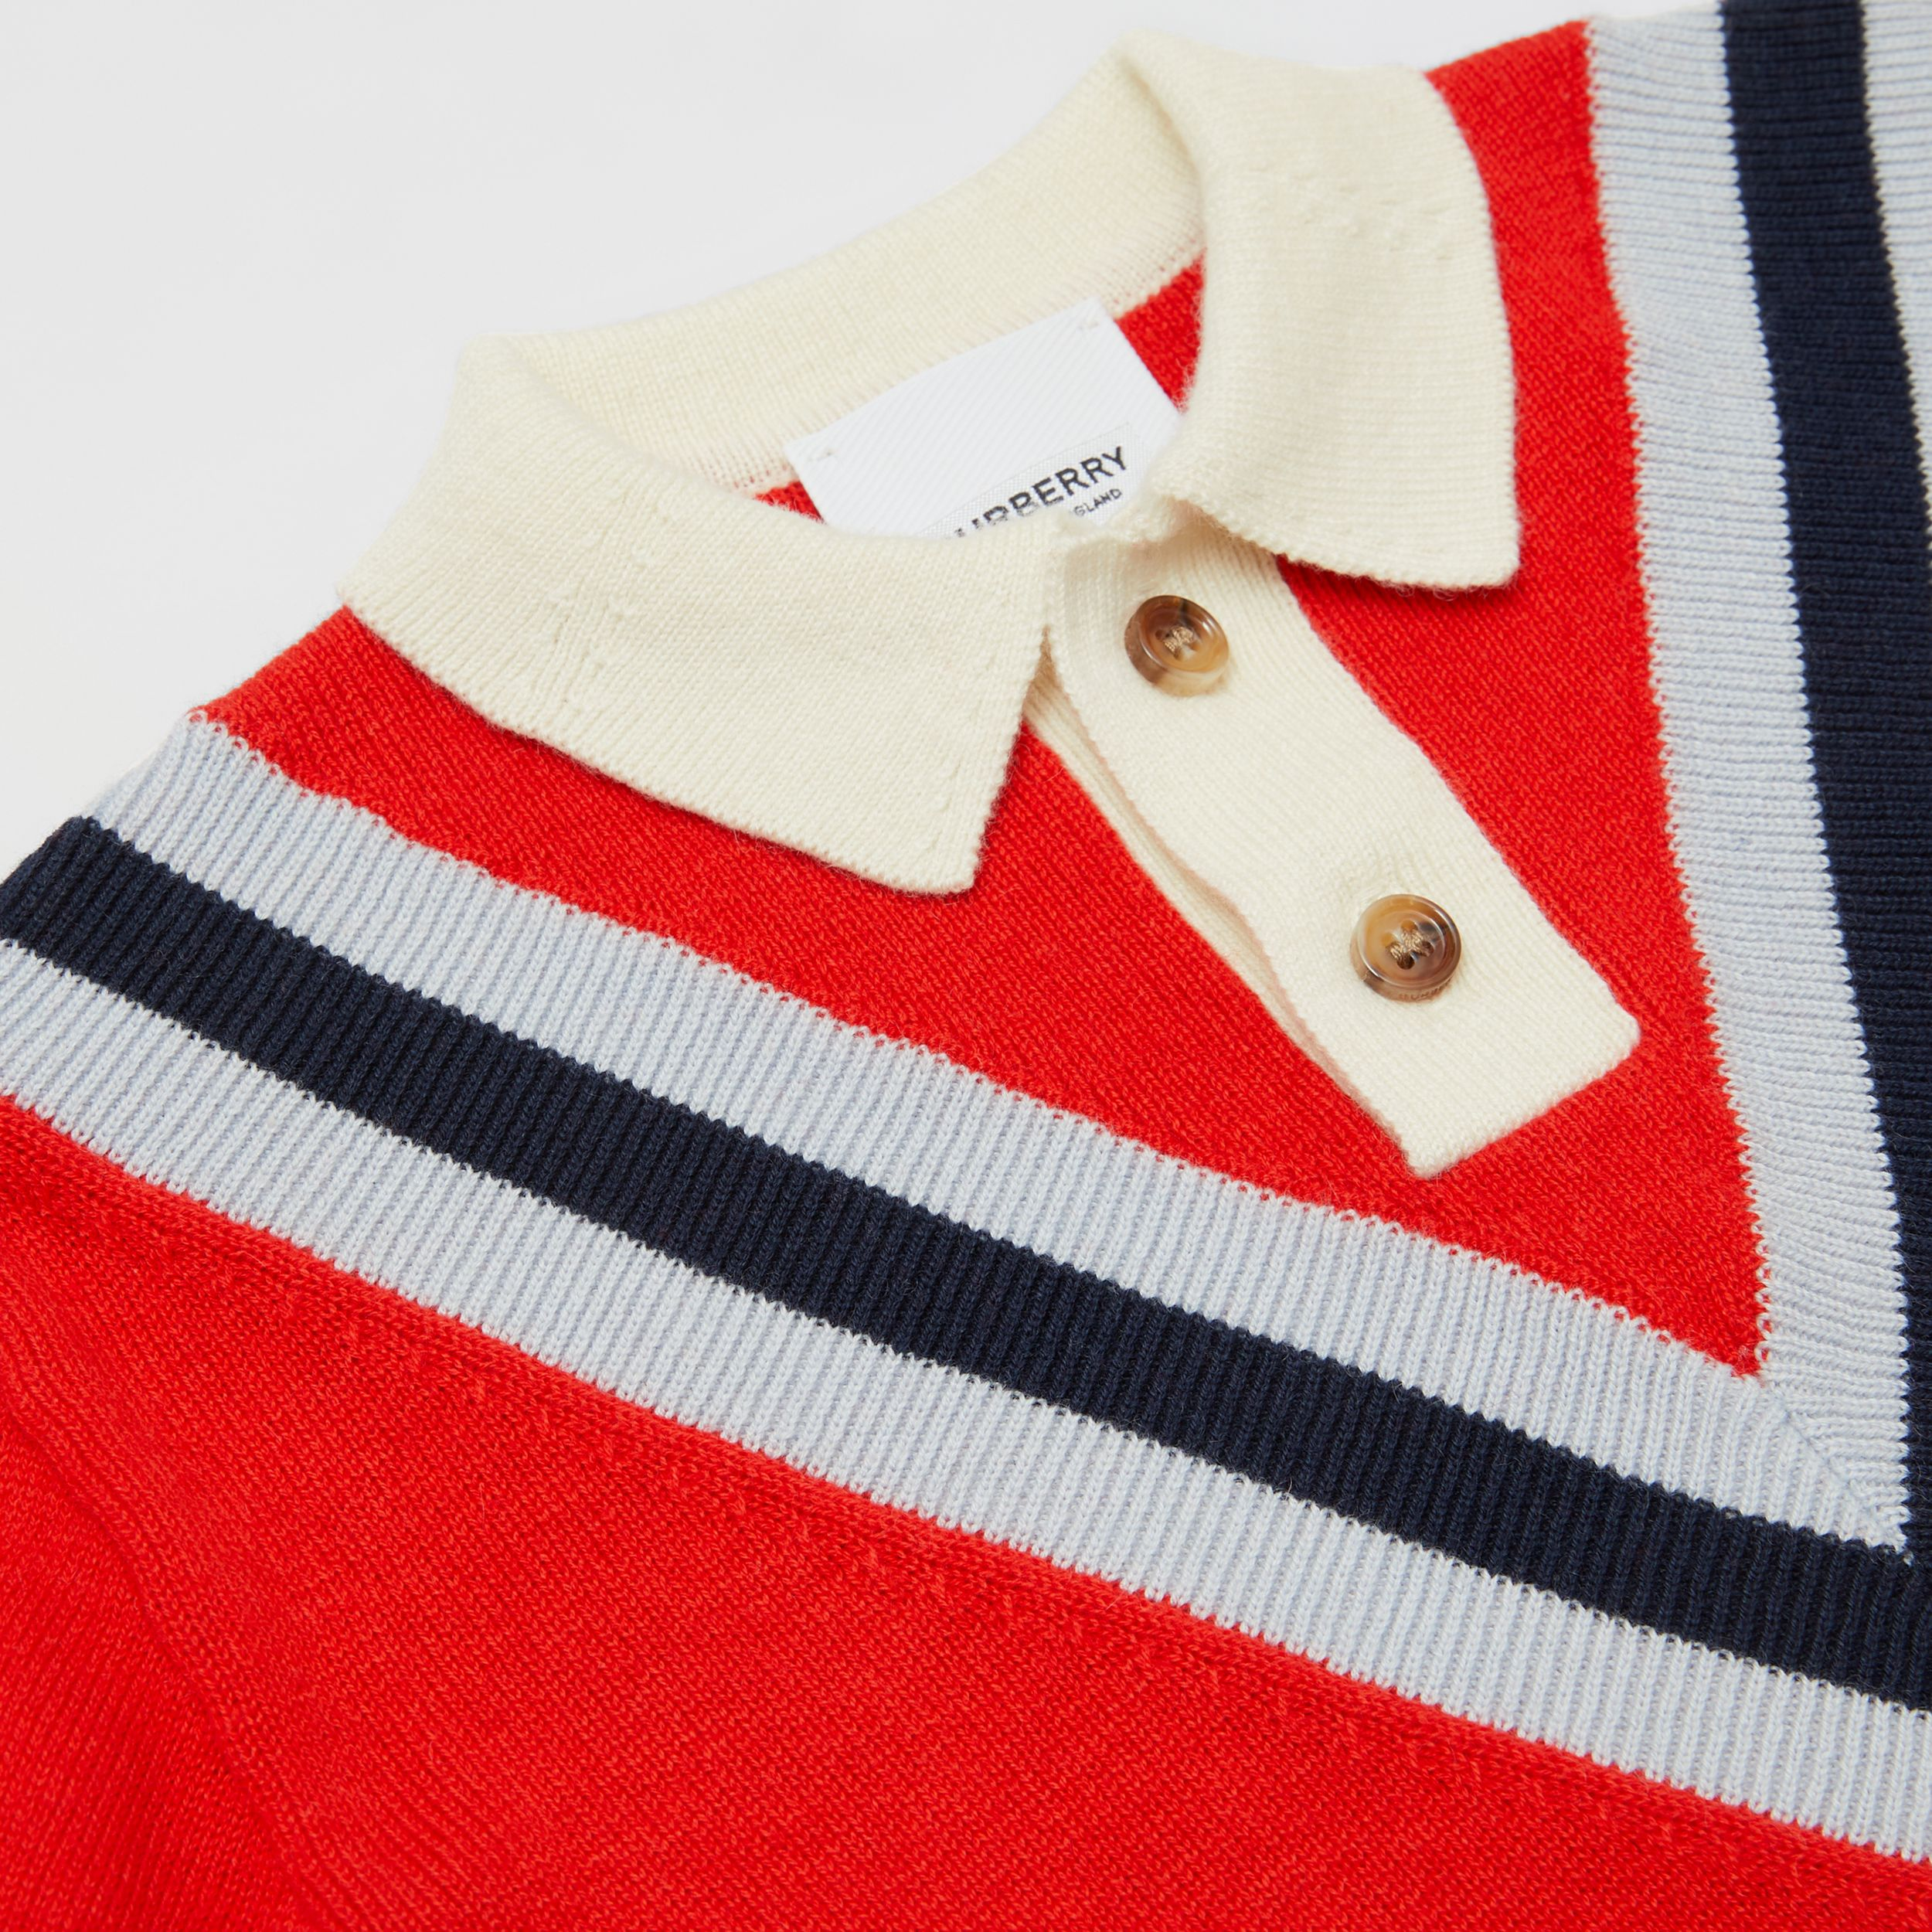 Long-sleeve Knit Cashmere Cotton Polo Shirt in Bright Red - Children | Burberry - 2